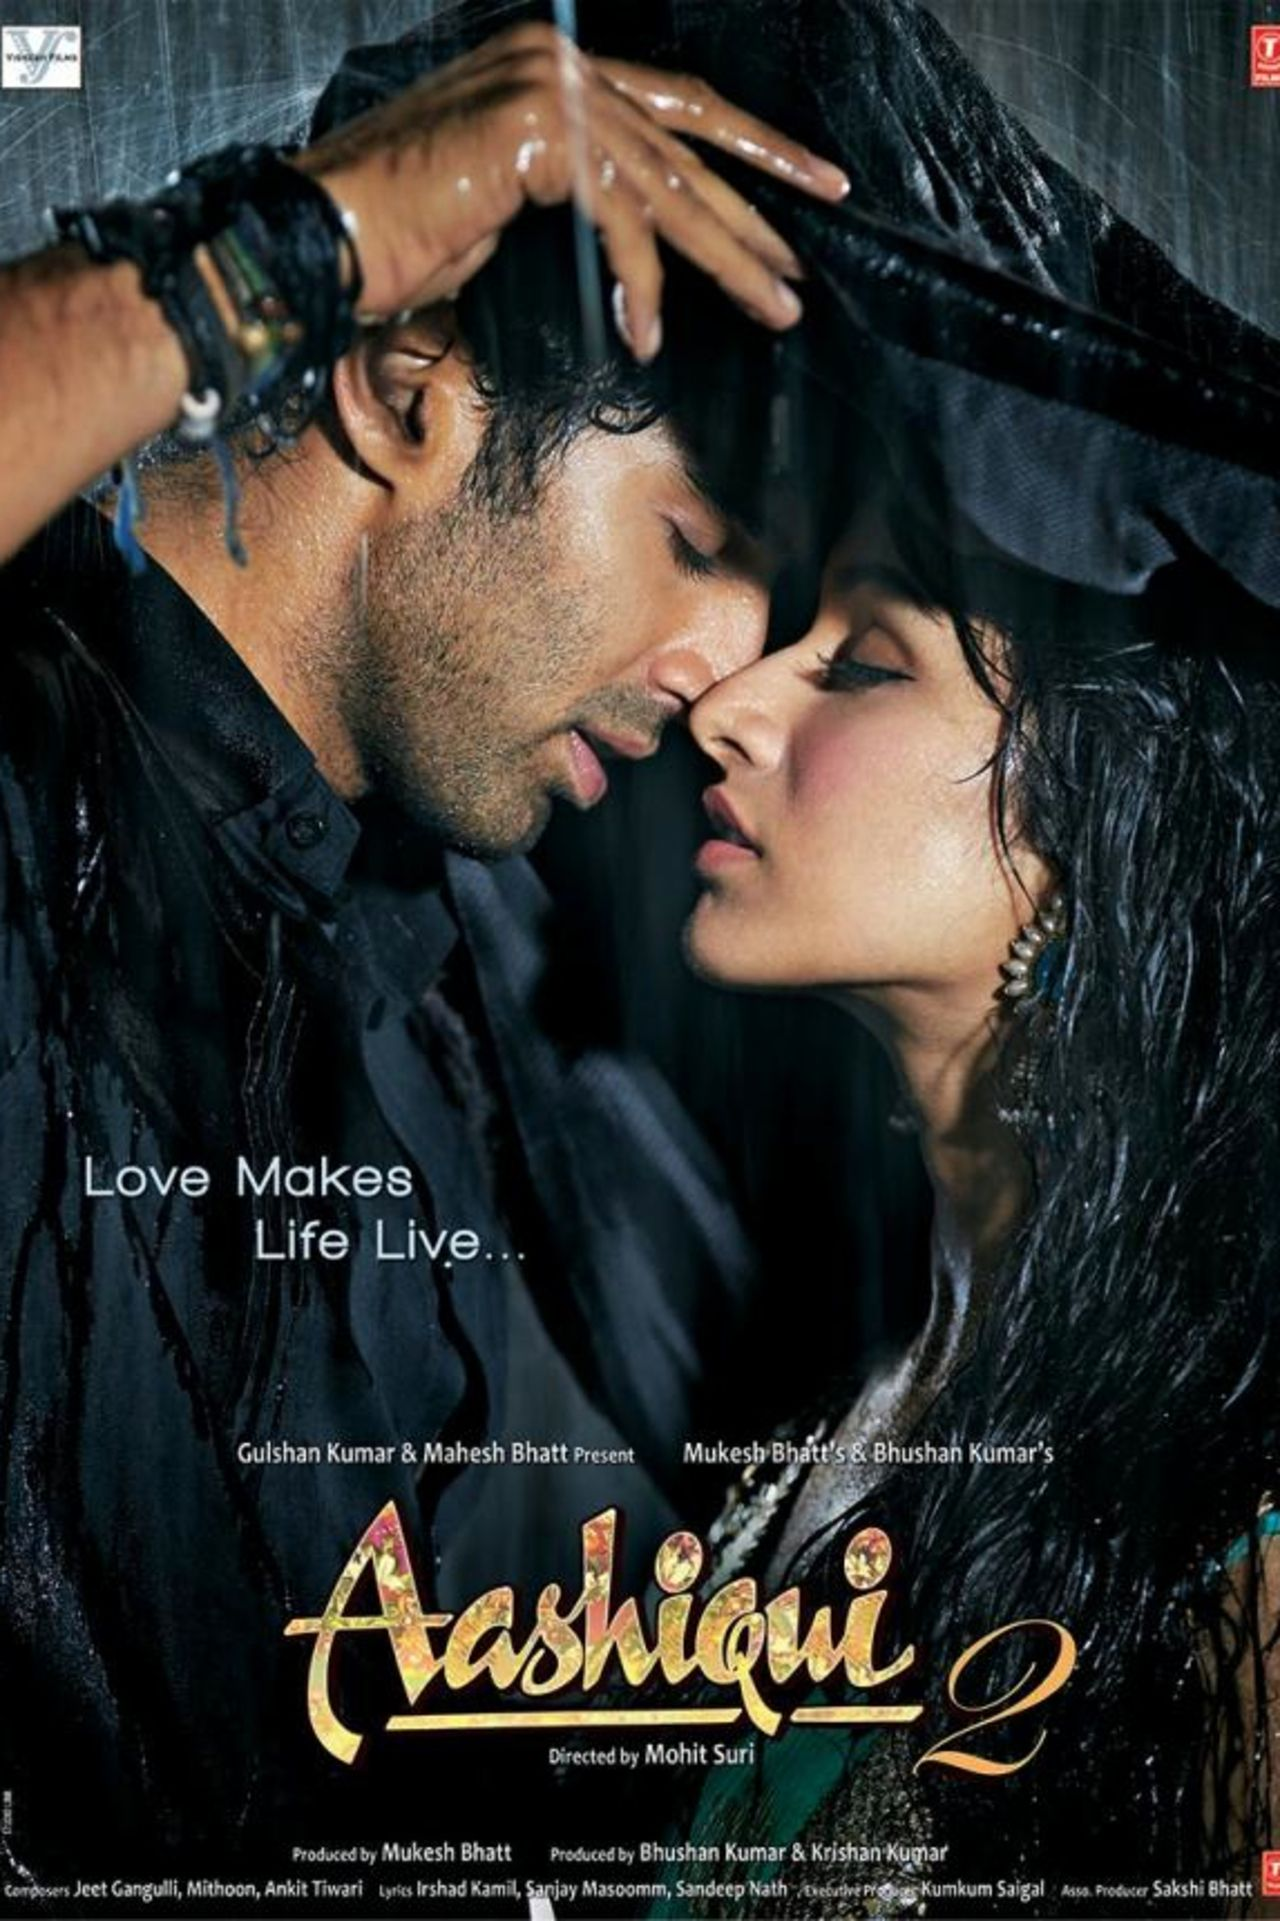 Aashiqui 2 Photos - Aashiqui 2 Movie Poster , HD Wallpaper & Backgrounds